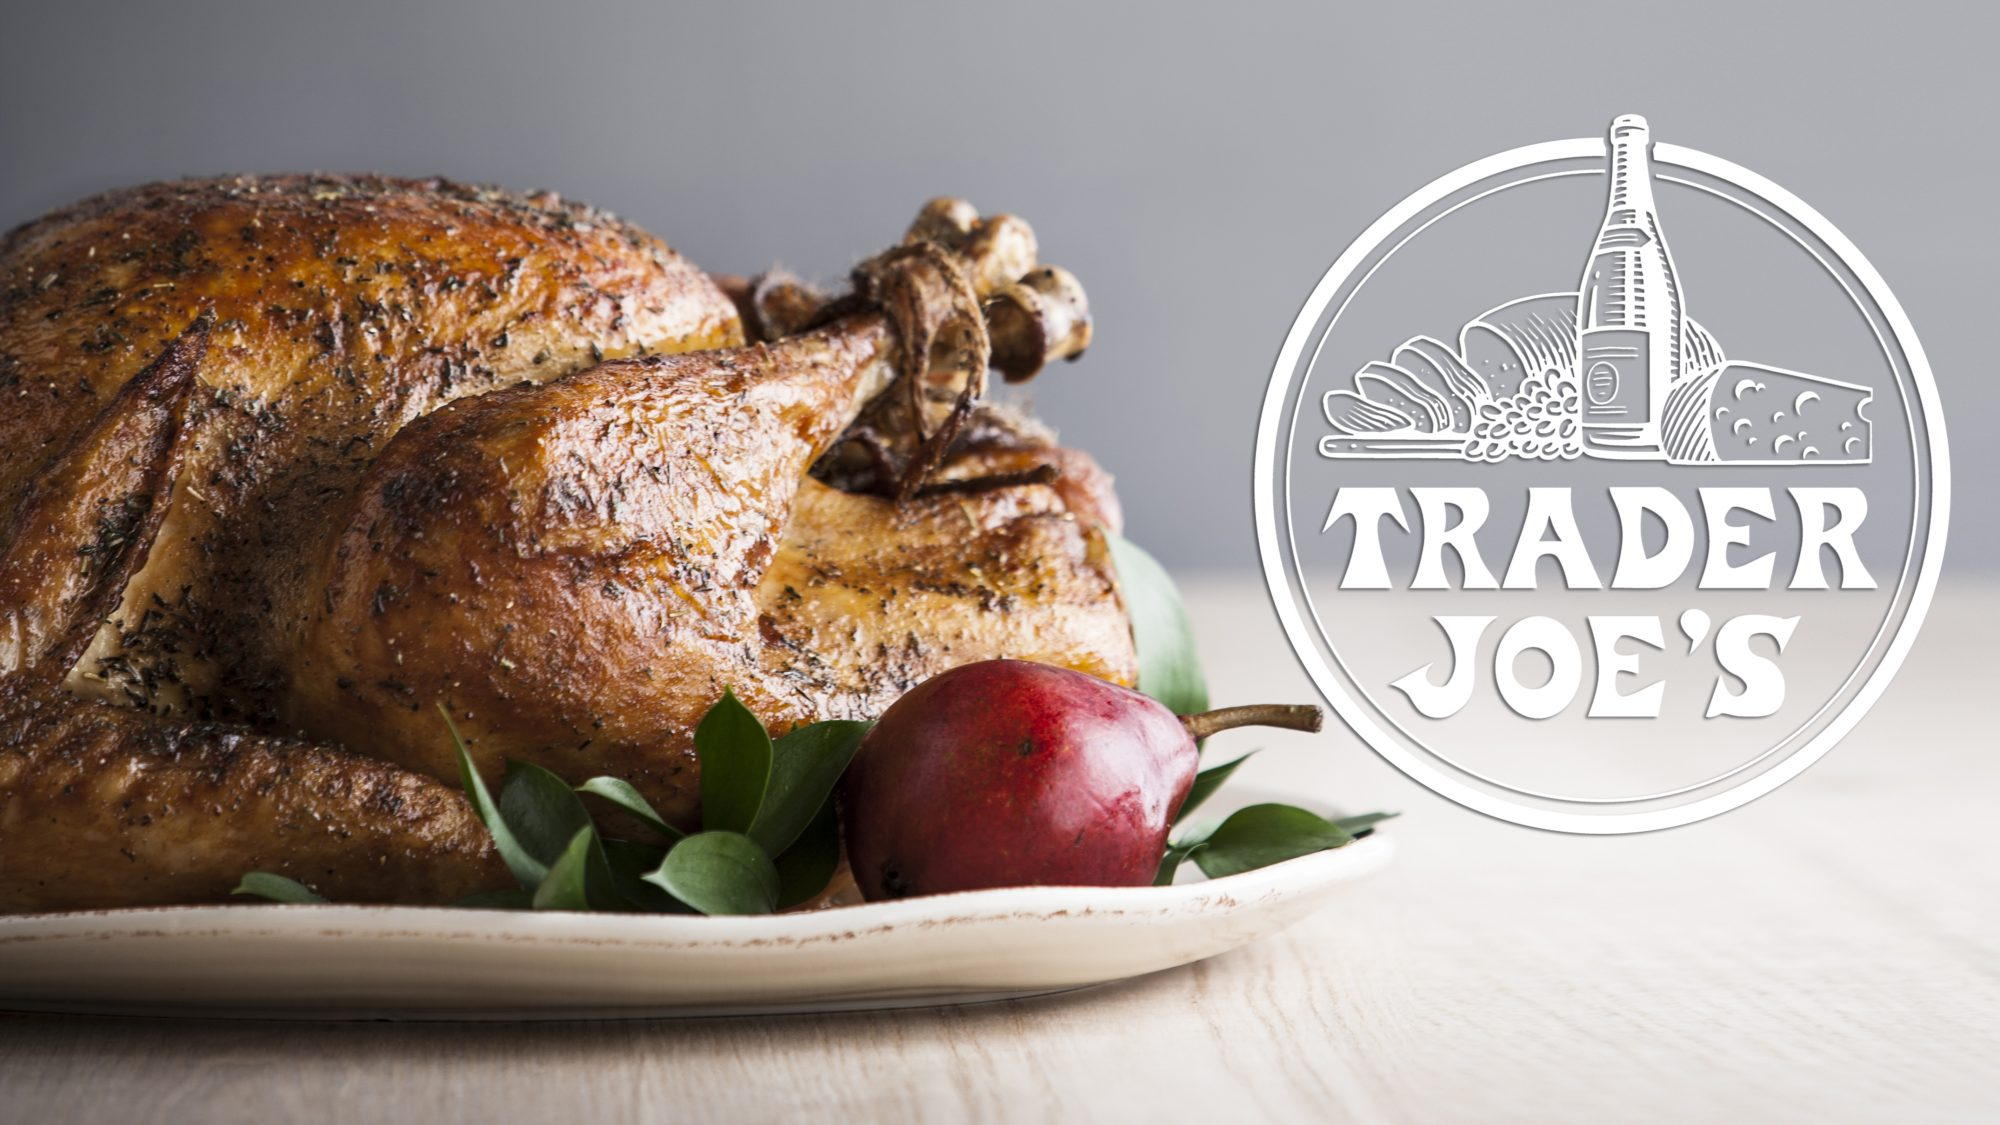 is-Trader-joes-open-on-thanksgiving: turkey on a platter